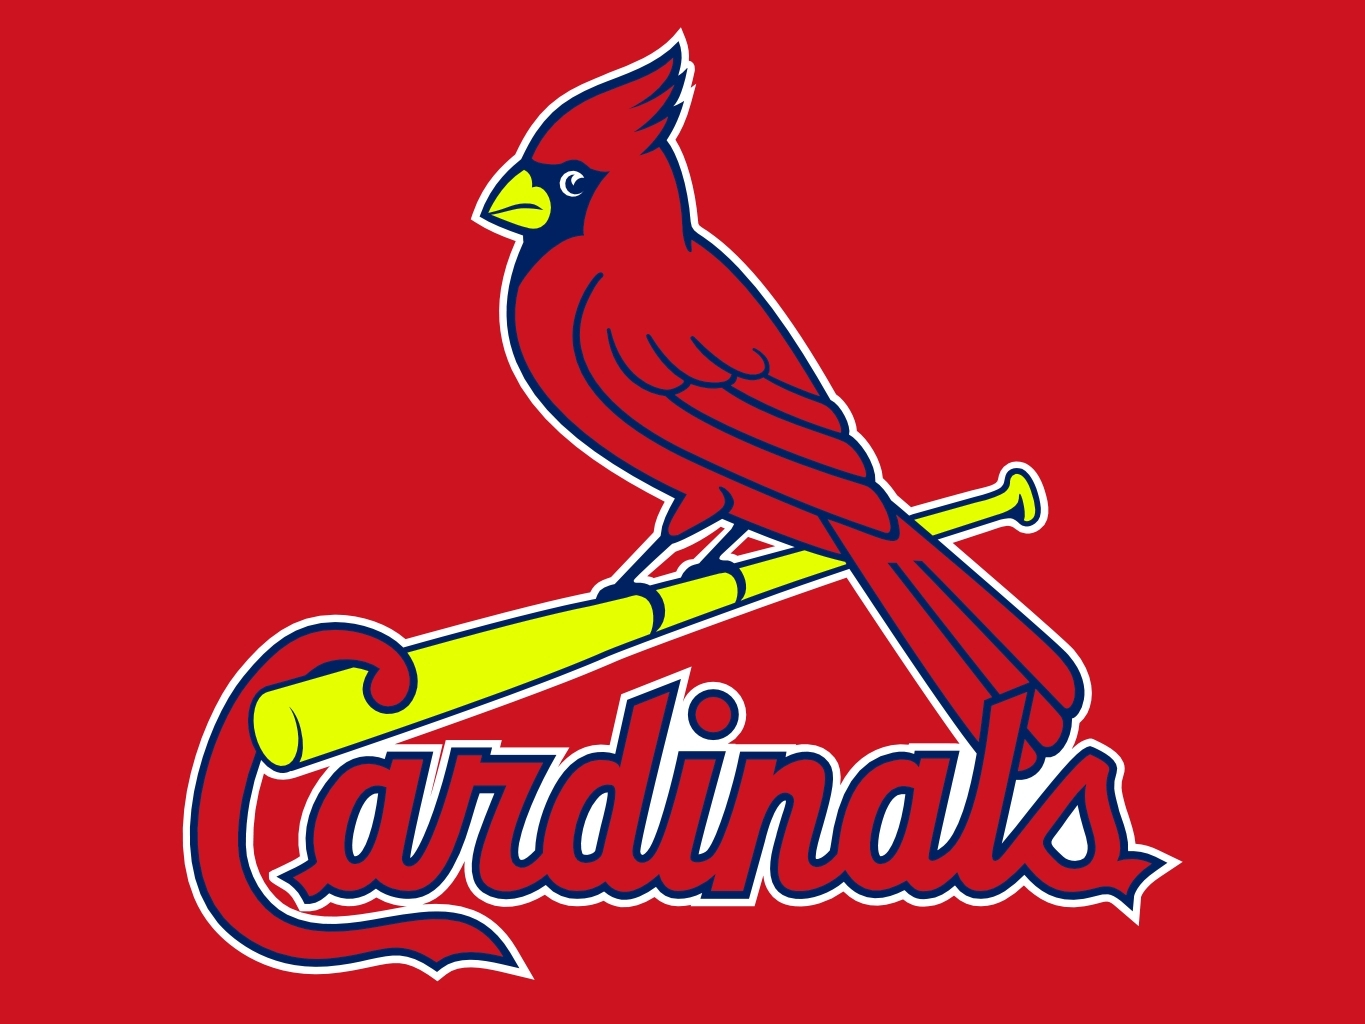 buy st louis cardinals tickets today. Black Bedroom Furniture Sets. Home Design Ideas